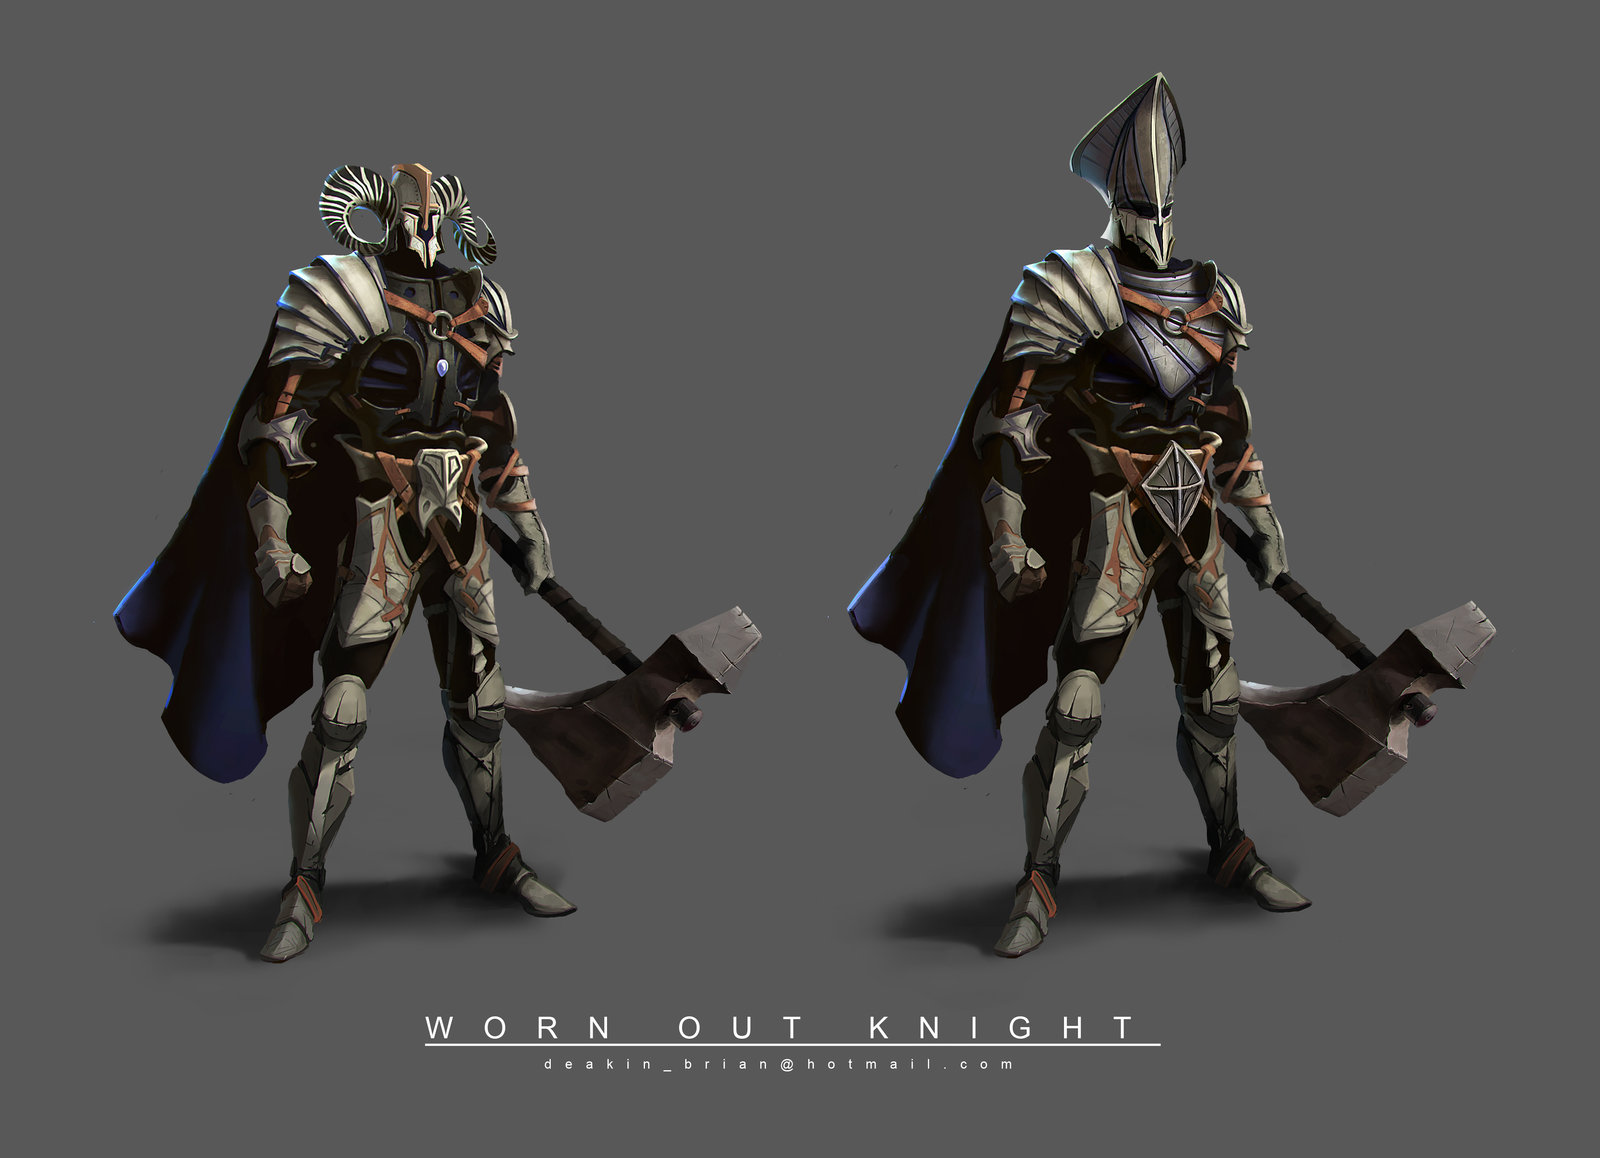 Worn out Knight